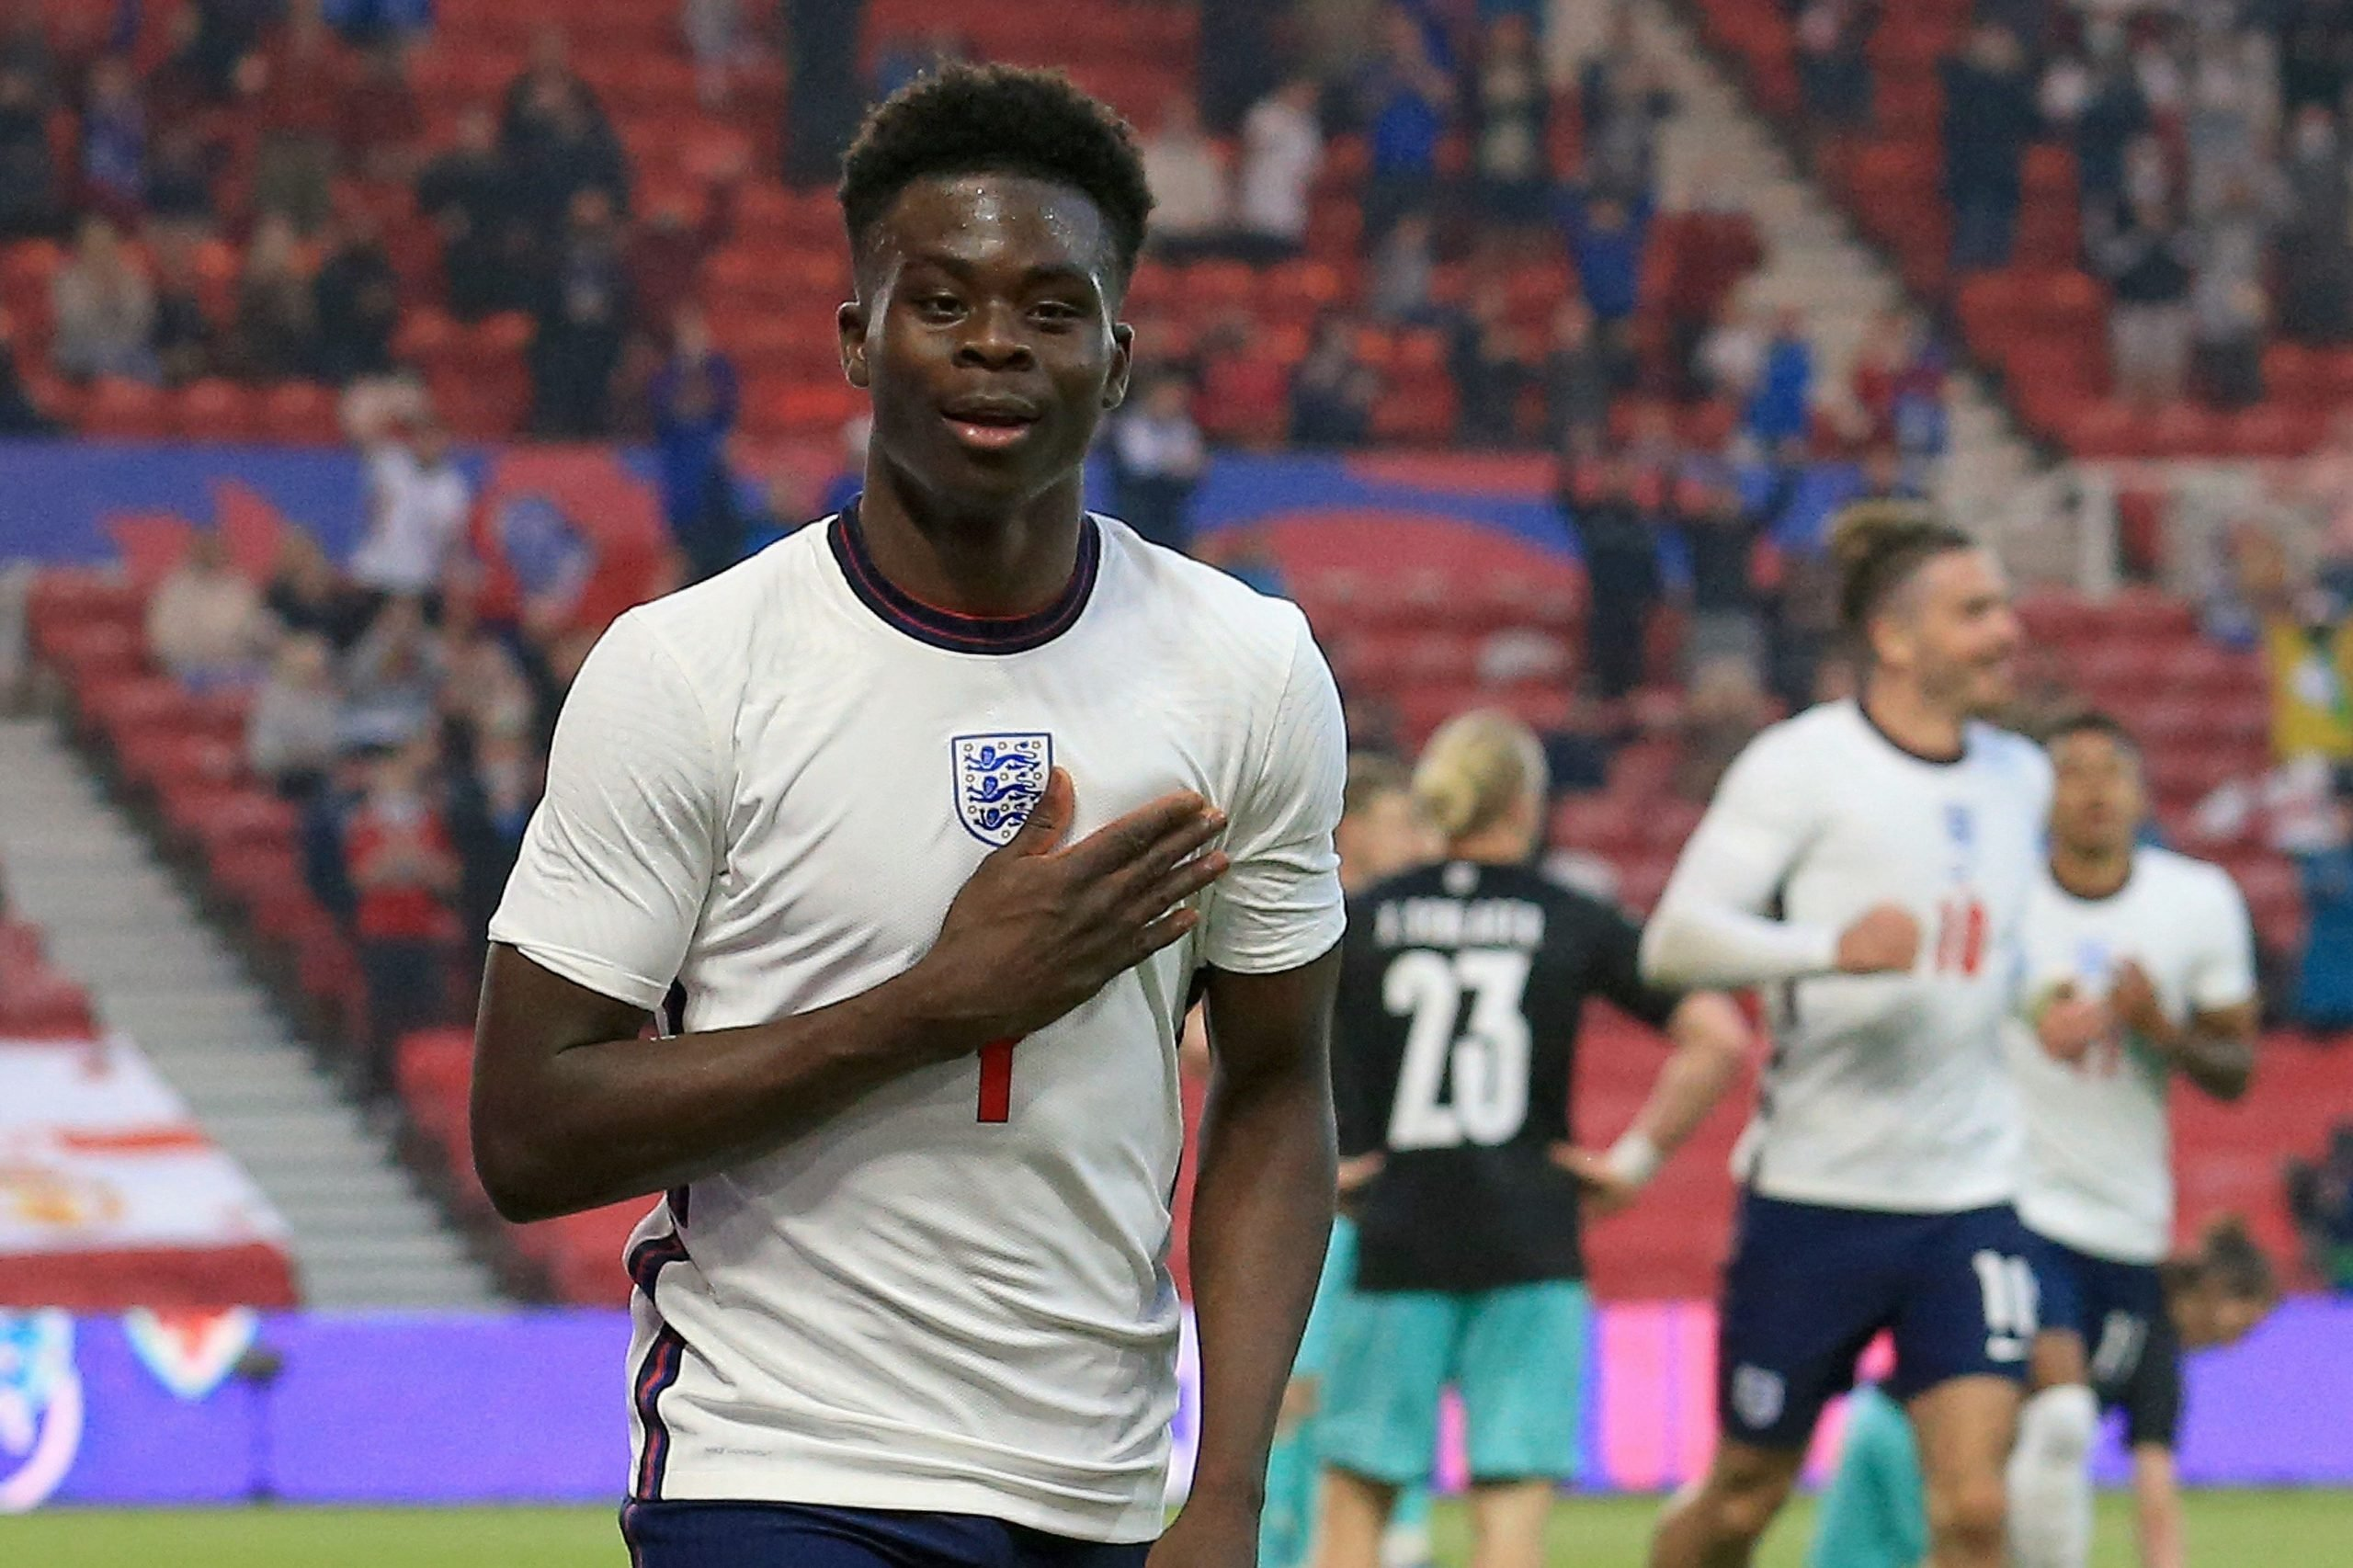 It's dream come true for me – says Saka after scoring first England goal